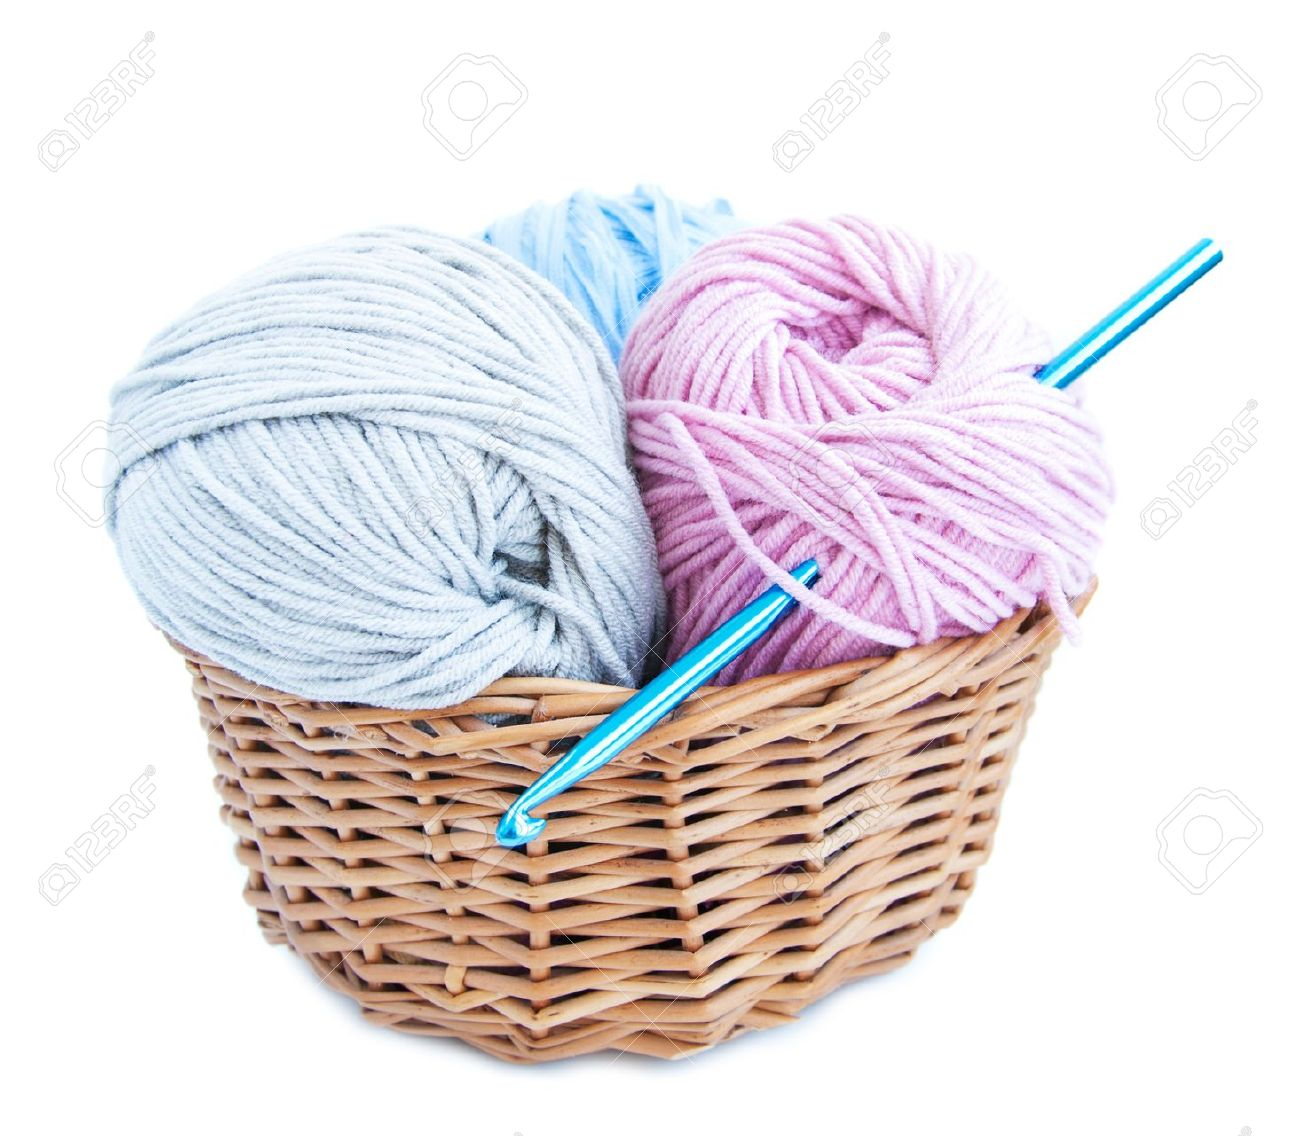 Basket With Crochet Hook And Yarn On A White Background Stock Photo